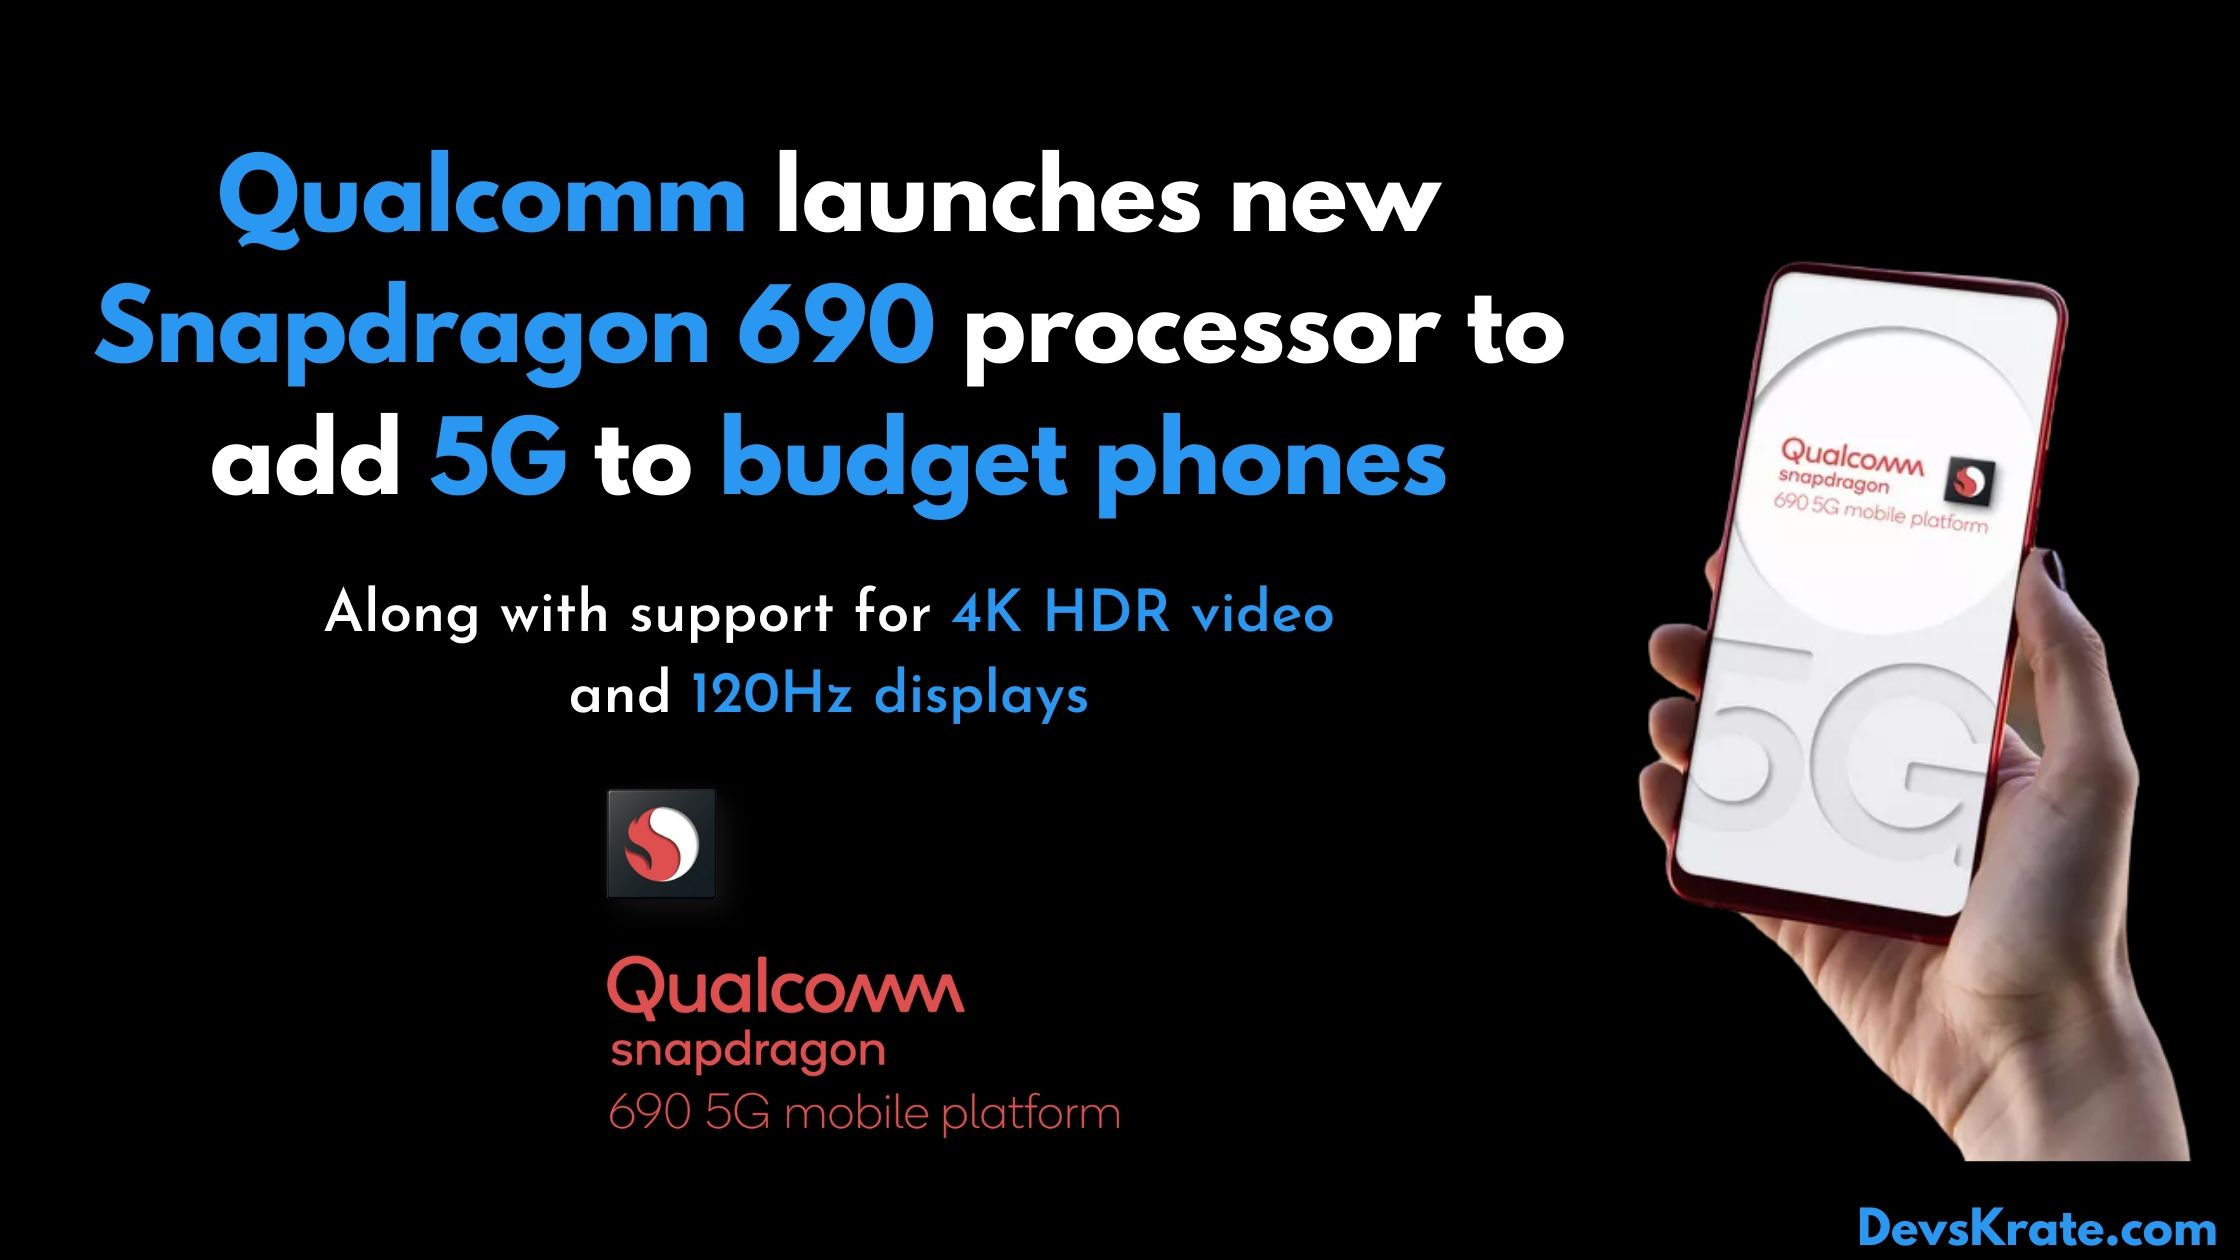 Qualcomm launches the Snapdragon 690